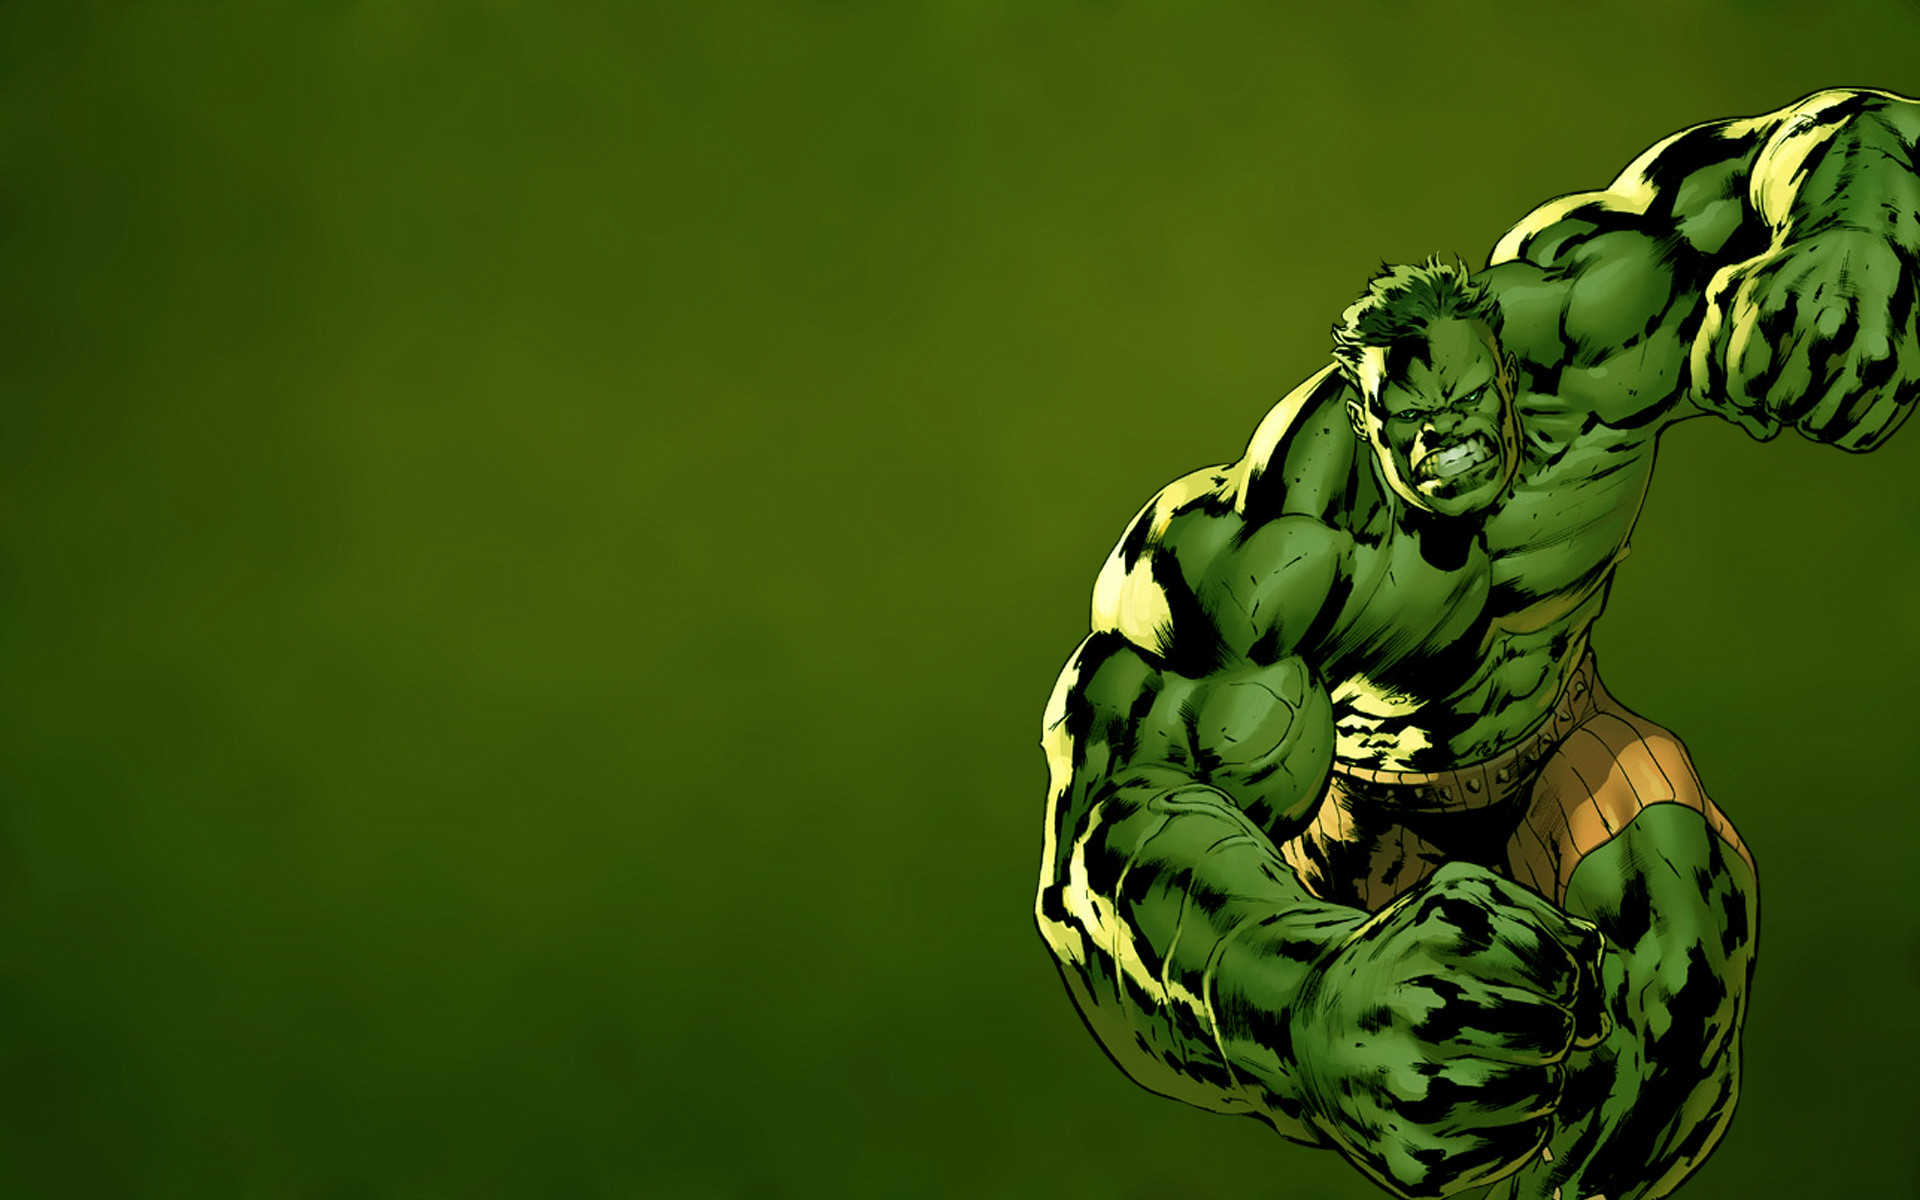 The Hulk Wallpaper 60 Pictures